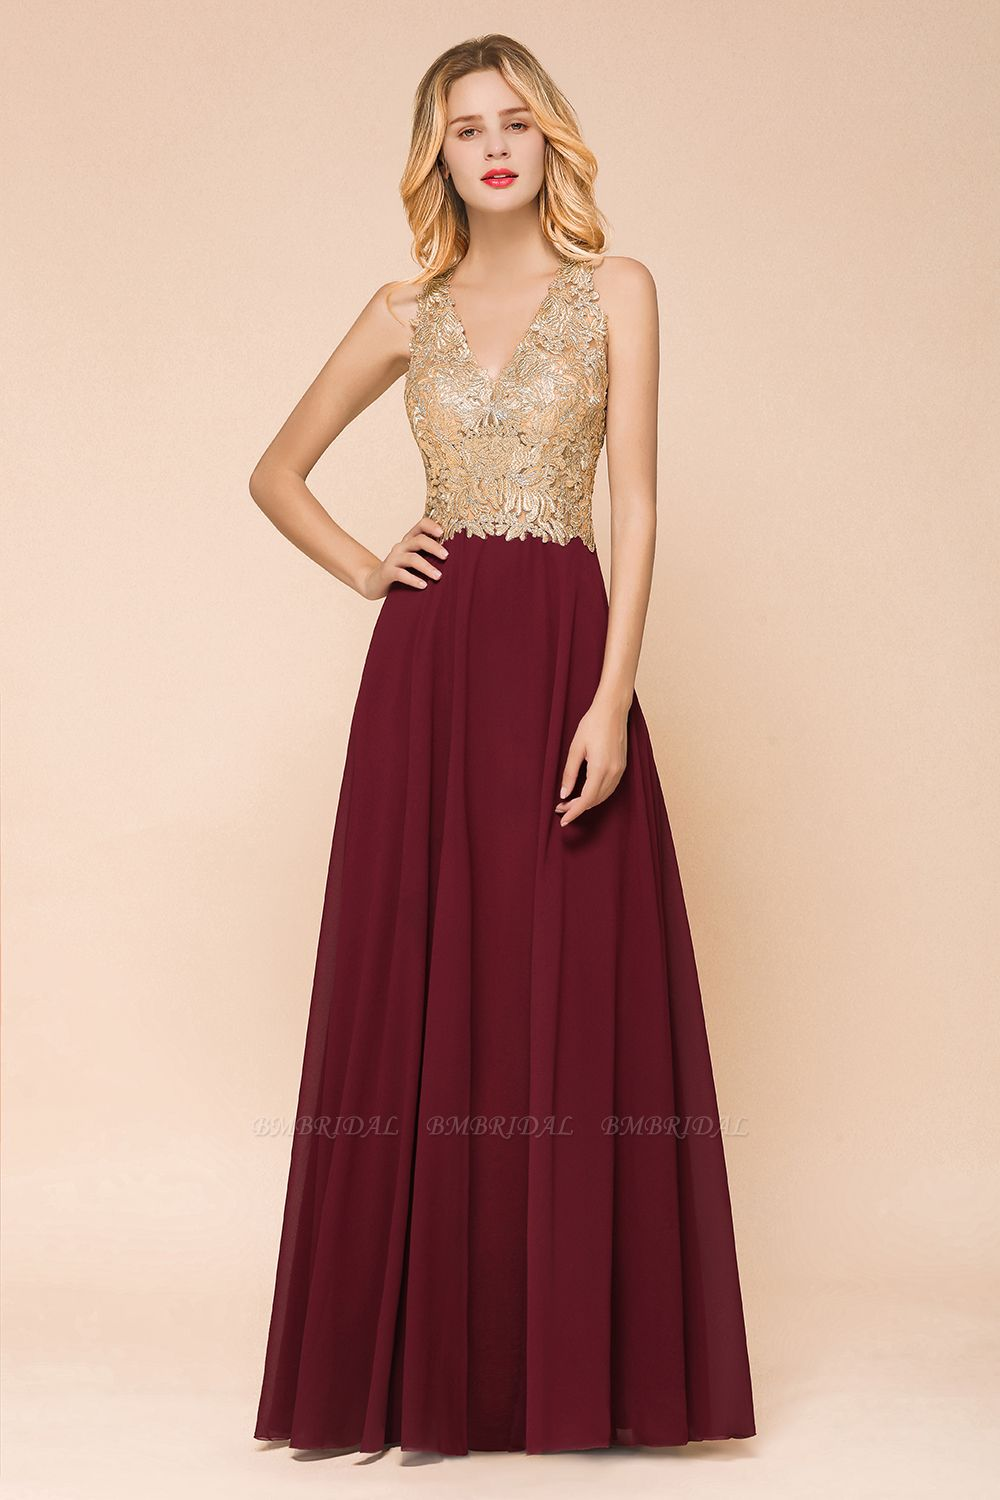 BMbridal Gorgeous V-Neck Burgundy Prom Dress Long Sleeveless Evening Gowns With Appliques